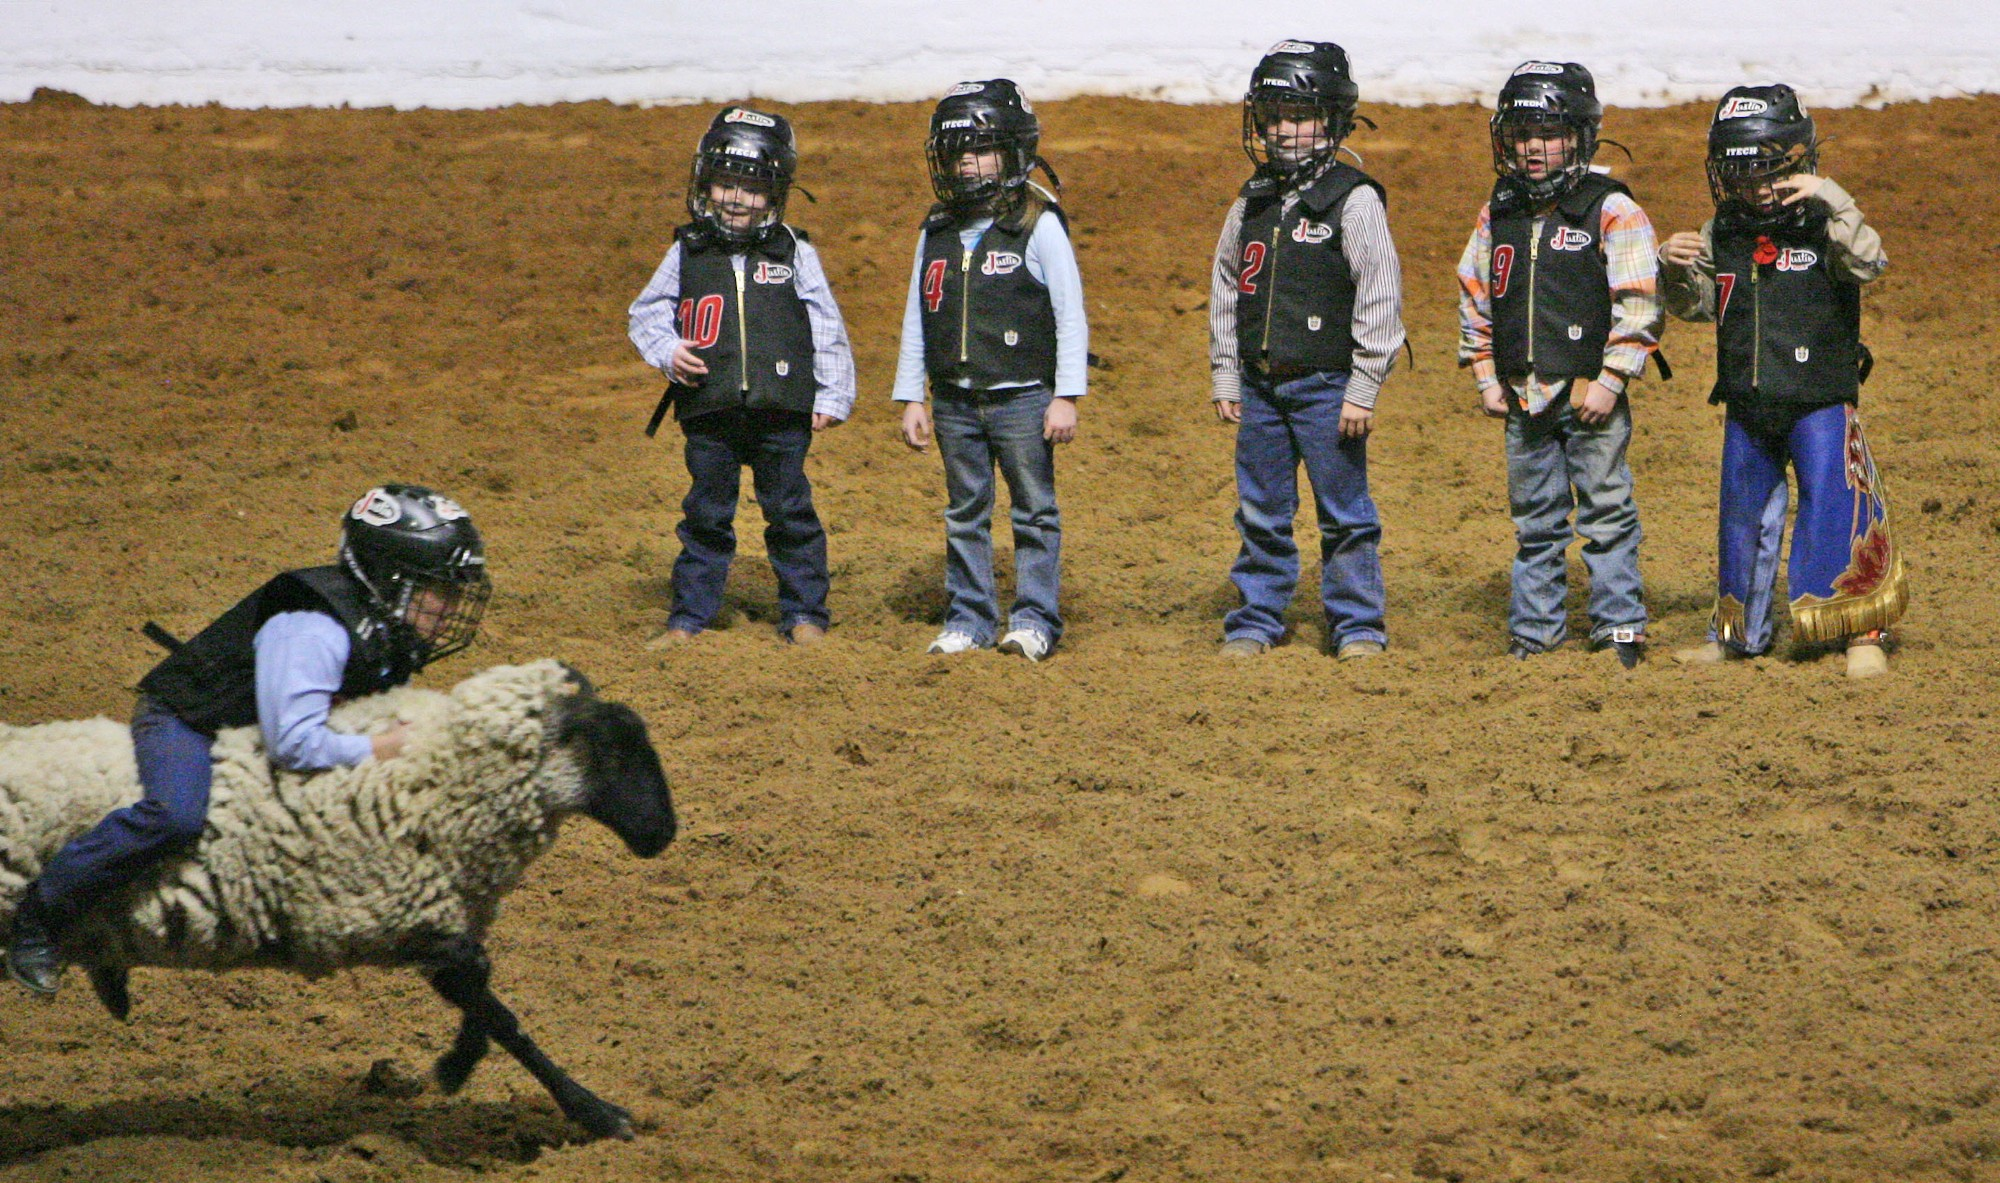 These Photos Of Terrified Toddlers Riding Angry Sheep Are